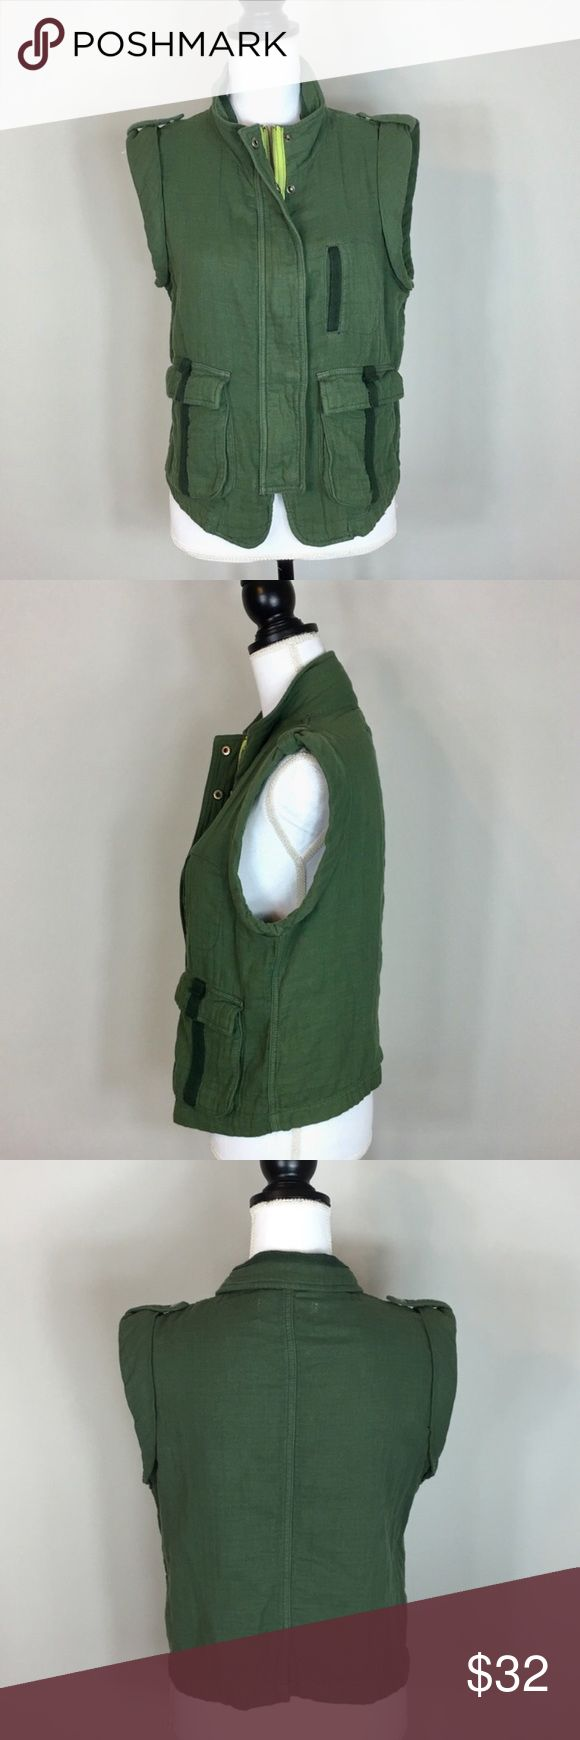 ❗️Urban Outfitters Ecote Army Green Vest MSRP $78! ❗️Urban Outfitters Ecote Army Green Vest. Retails $78. Size large. Good condition. Feel free to make an offer! I'm selling to the first good offer I receive. Discounts on bundles! Huge New Year Clearout Sale! All must go ;-) Urban Outfitters Jackets & Coats Vests